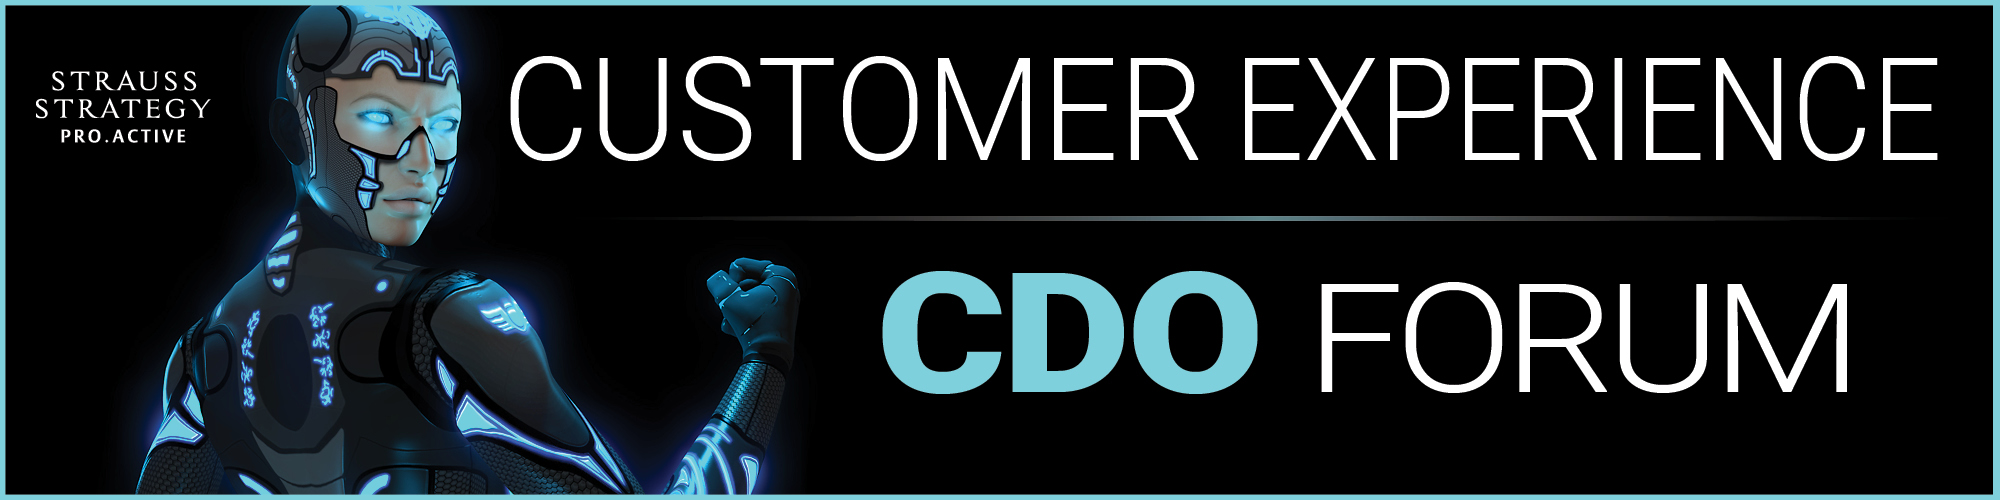 CUSTOMER-EXPERIENCE banner